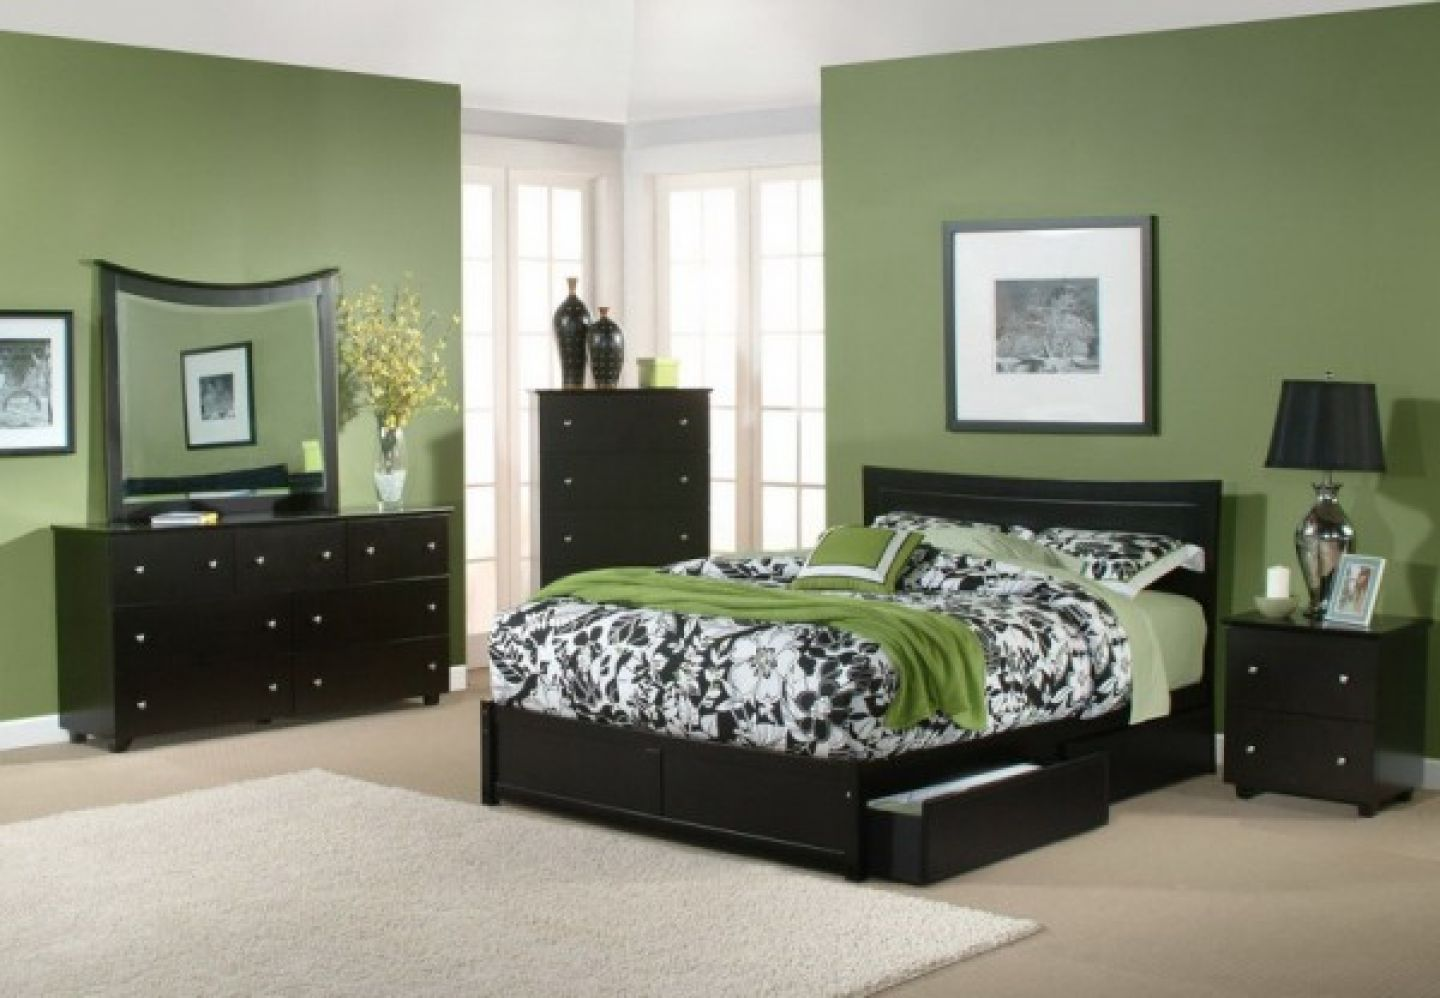 Brilliant Bedroom Design Using Green Wall Paint and Black Furniture